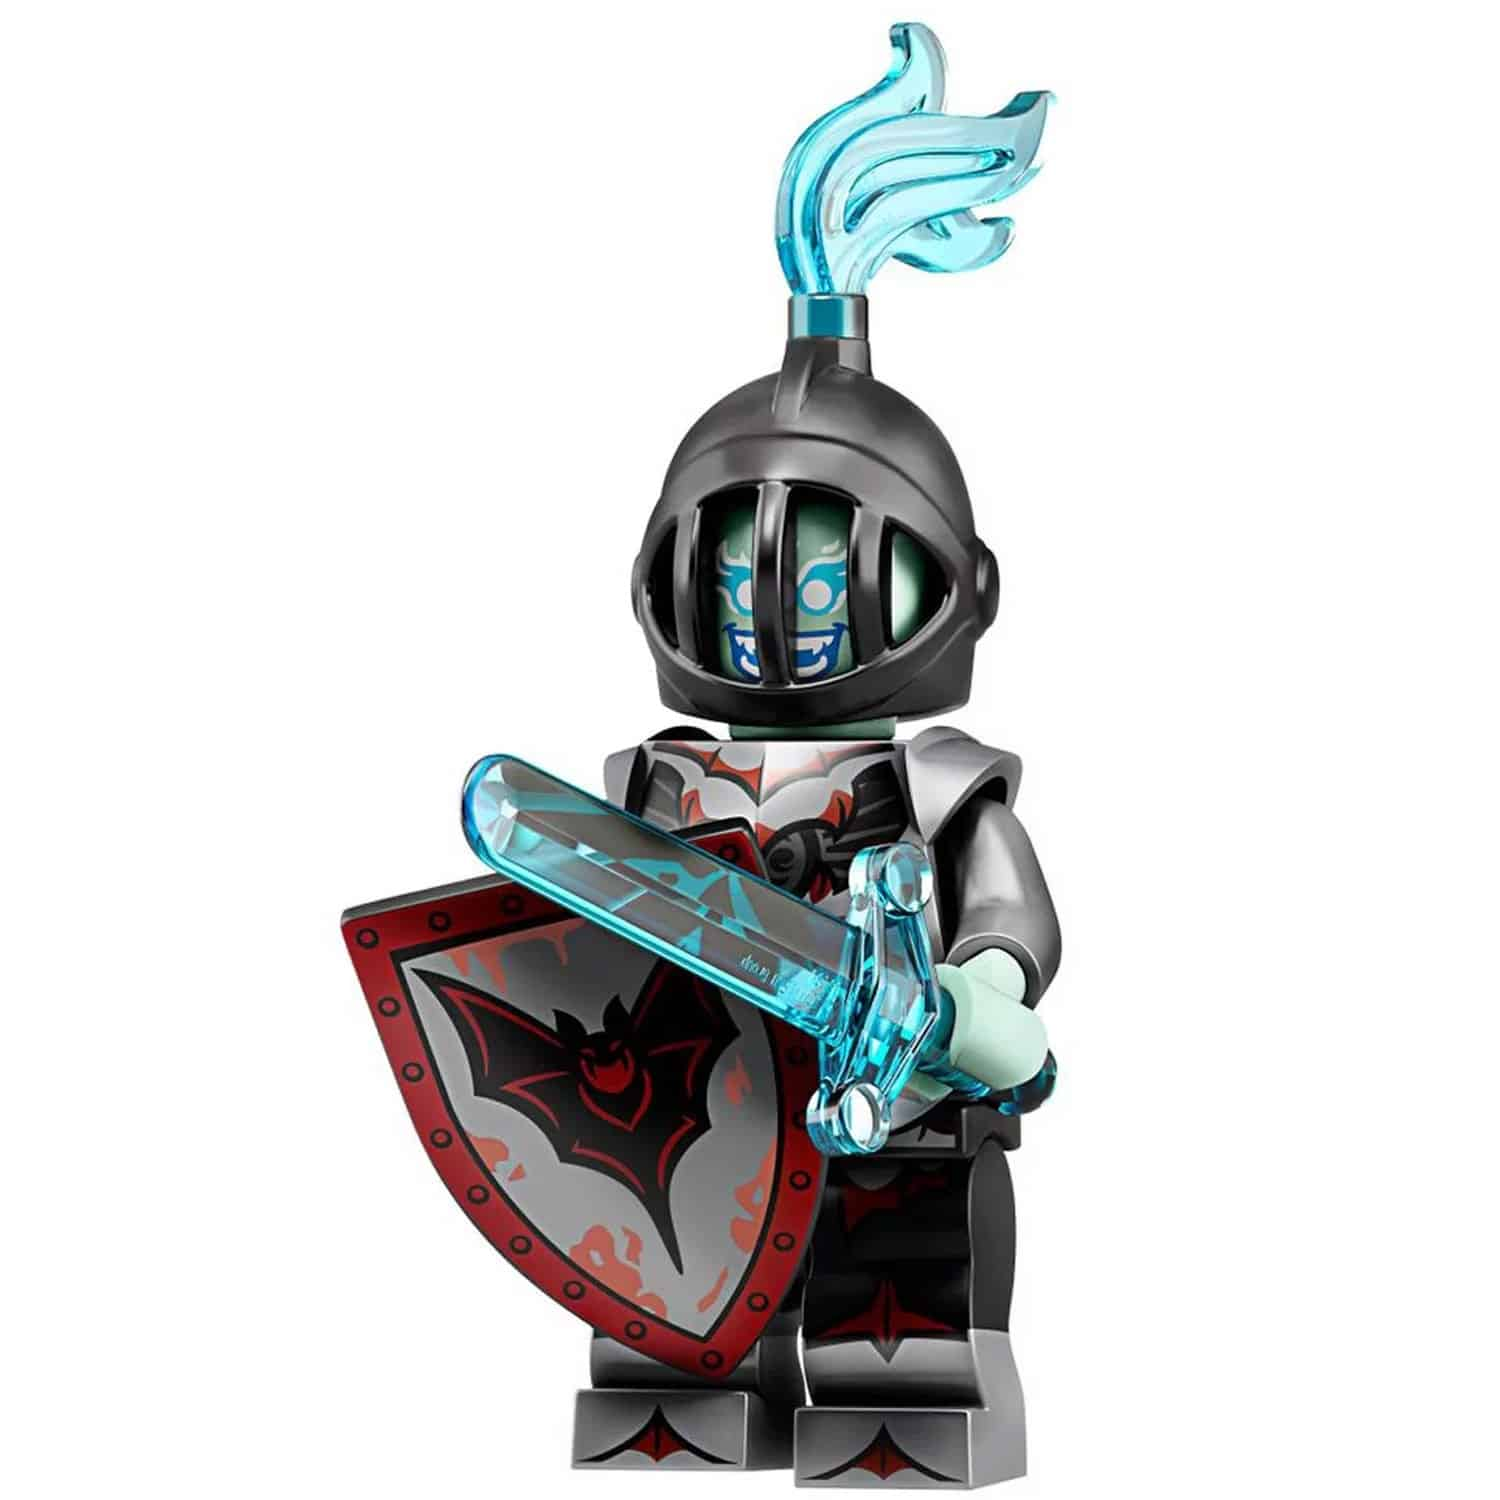 LEGO Dark Bat Night Minifigure Ghost – Series 19 CMF